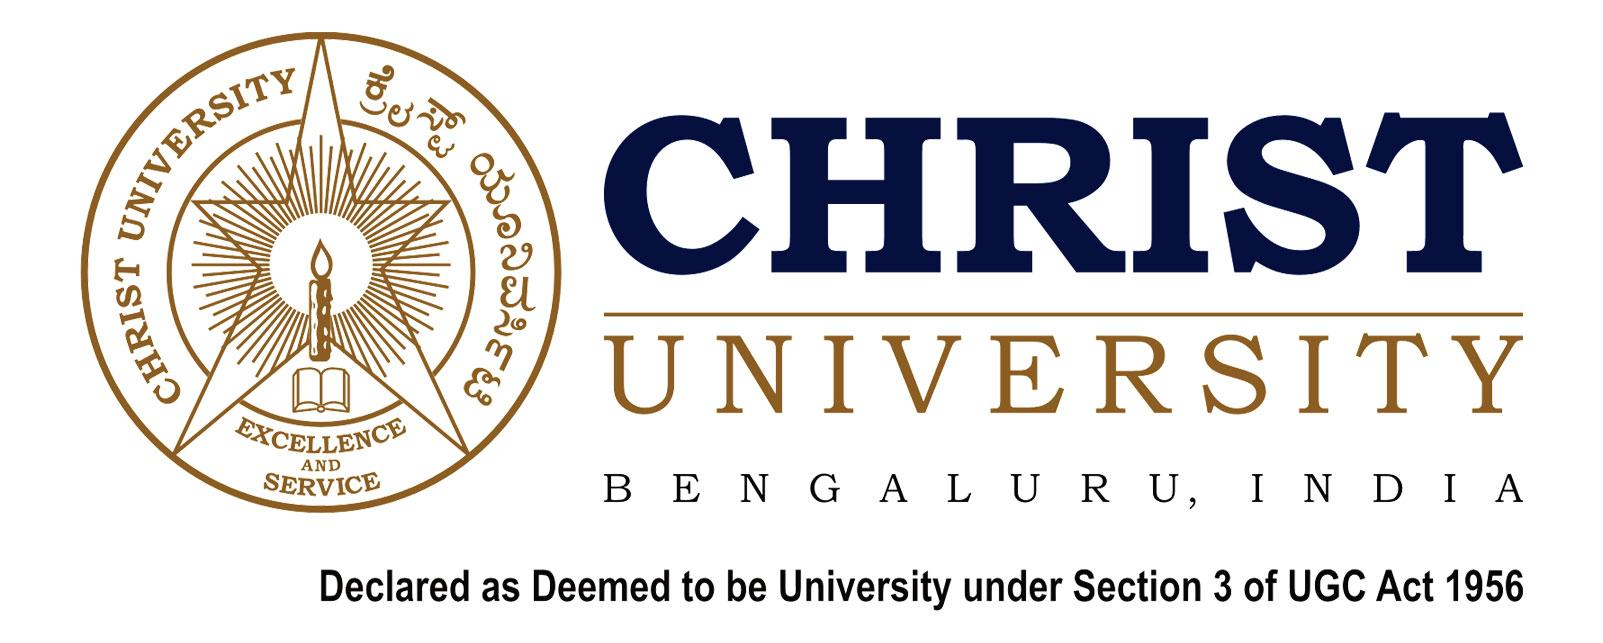 Call for Papers: Christ University's International Conference On Social Entrepreneurship [Bangalore, Nov 17-18]: Submit by June 20